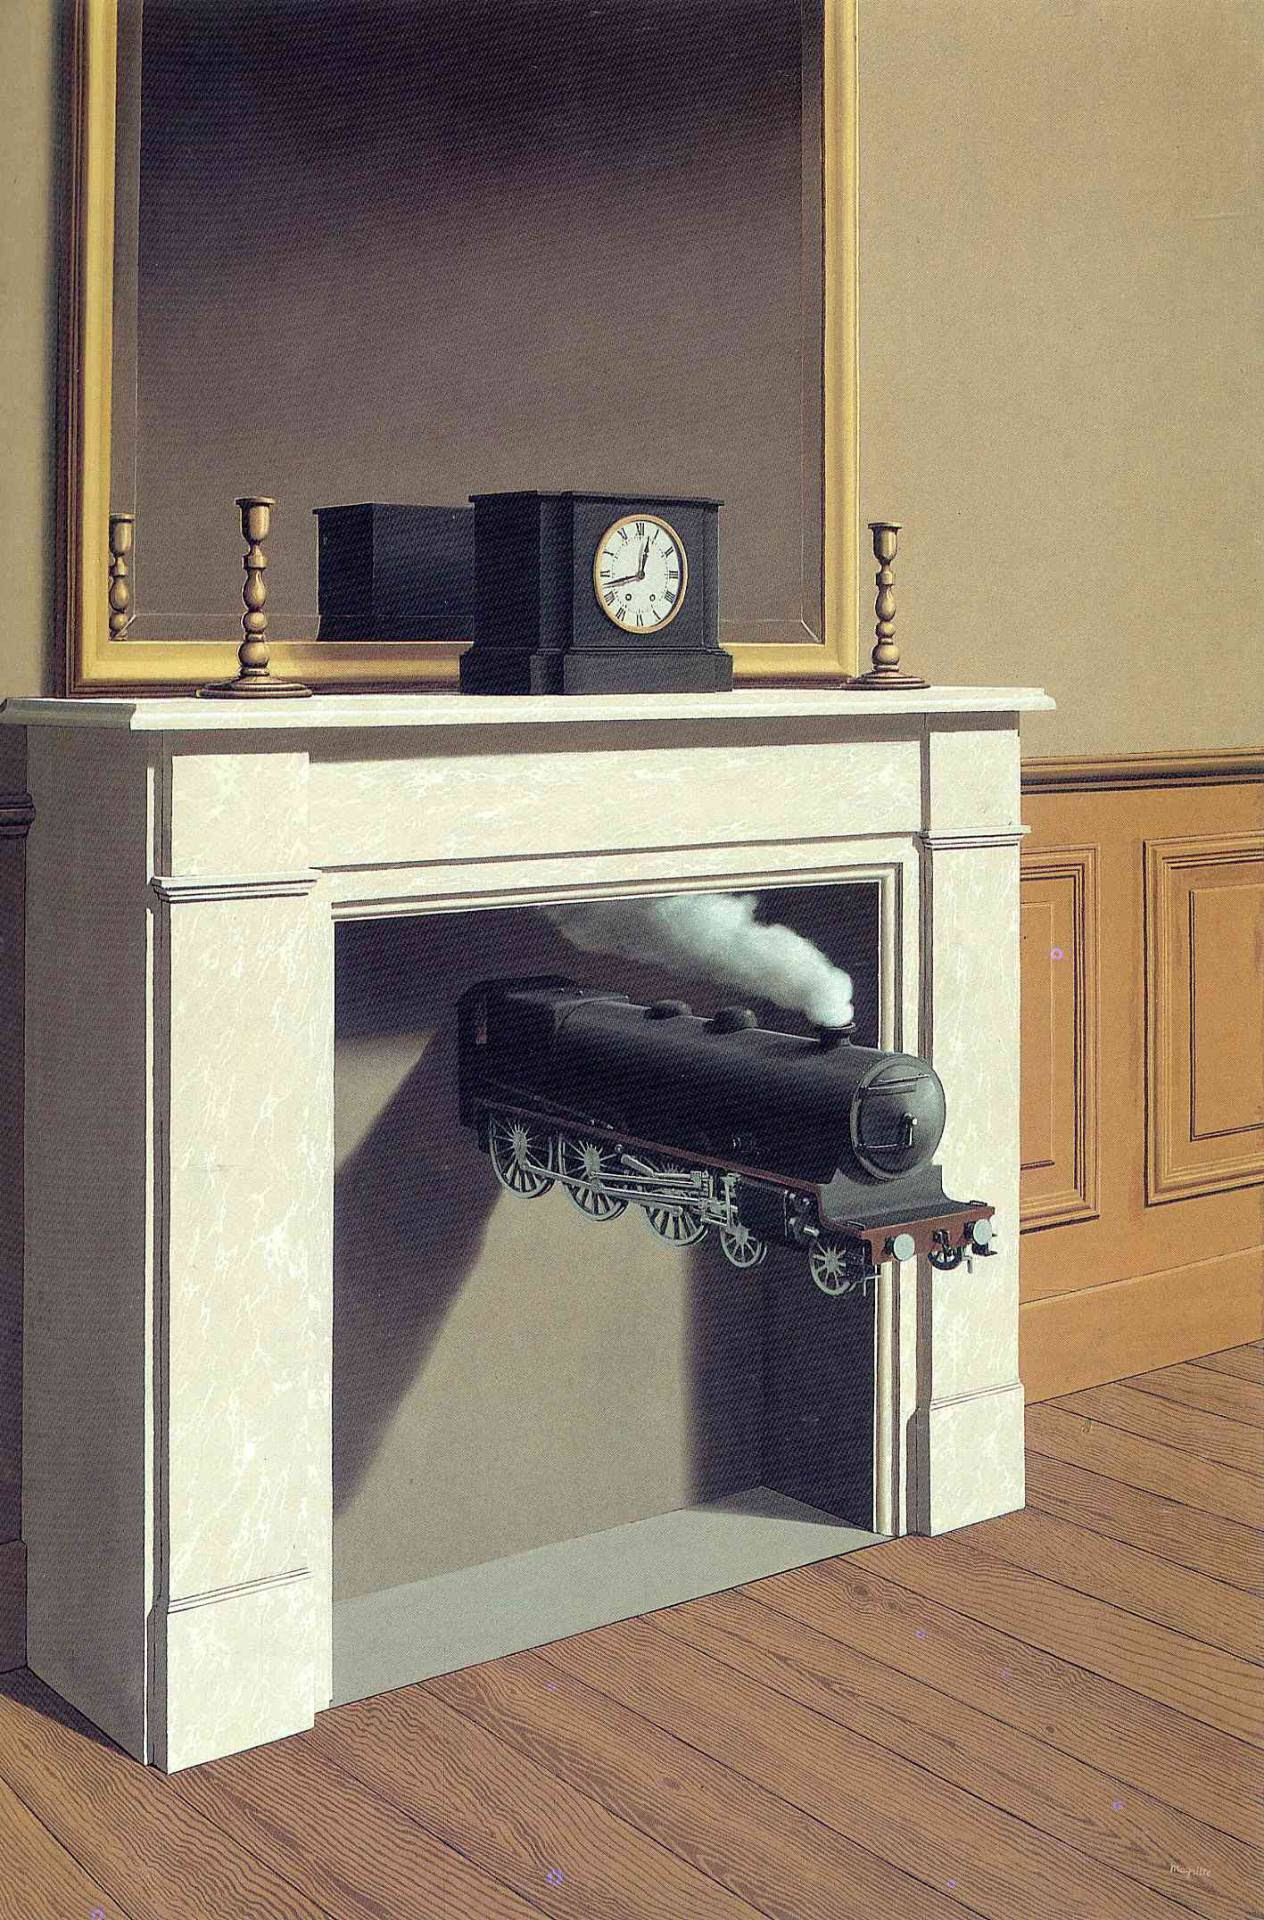 Time transfixed, 1938 Rene Magritte